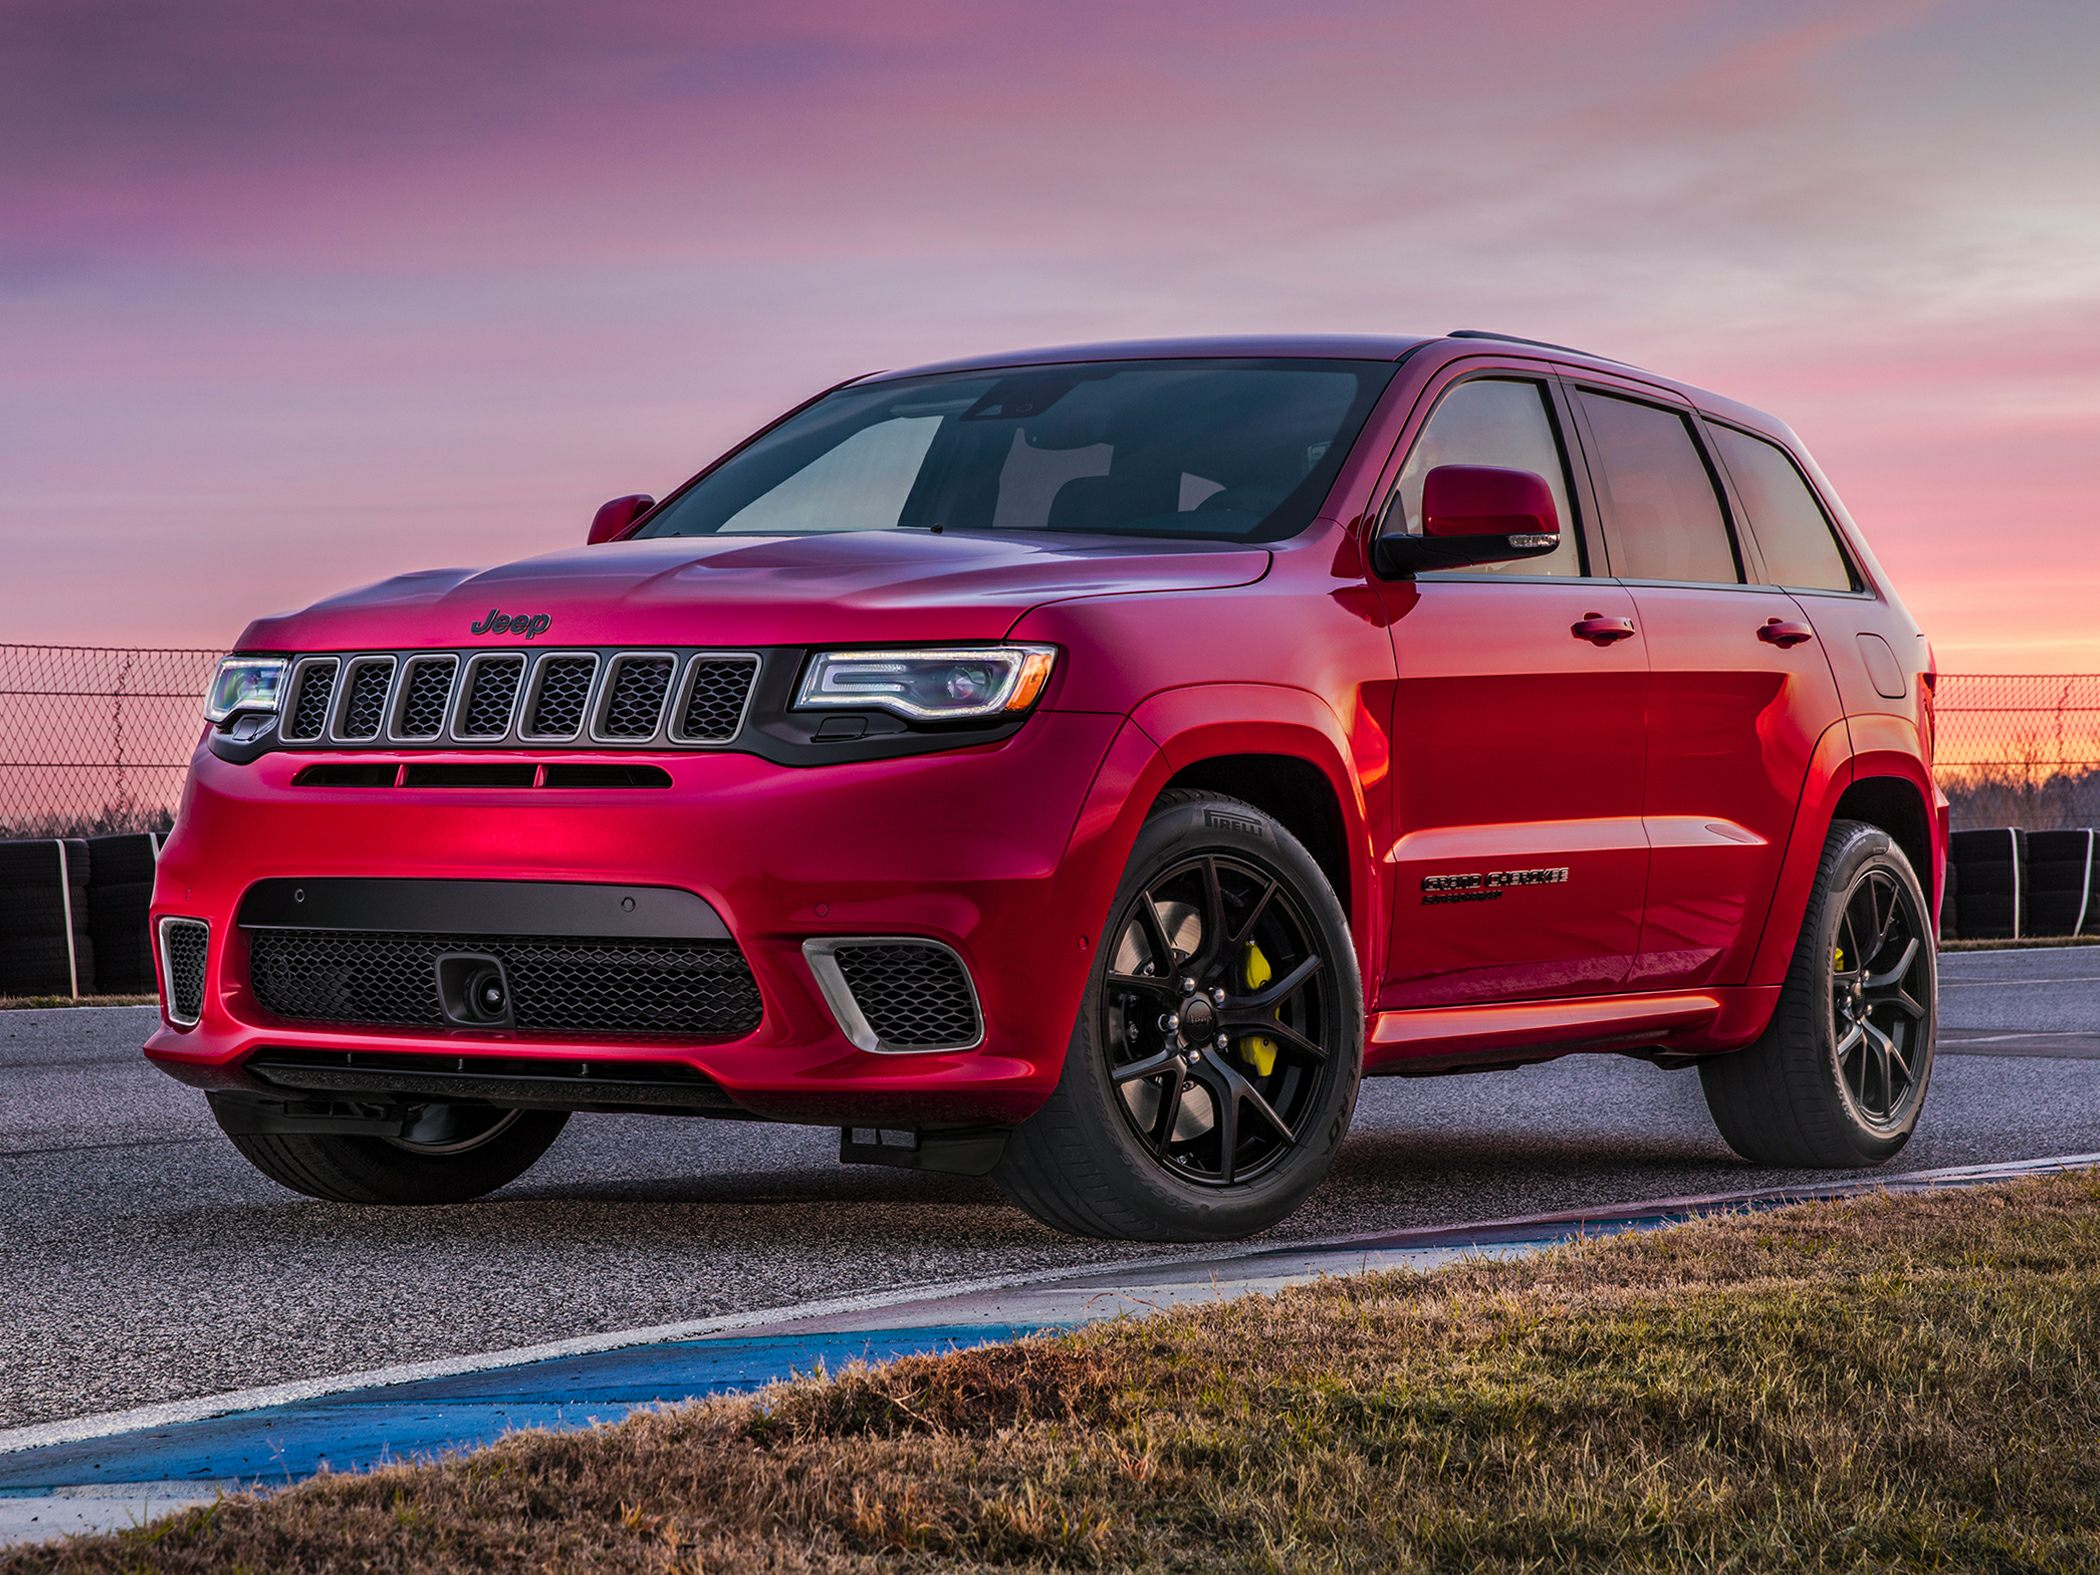 2021 Jeep Grand Cherokee Srt8 Configurations